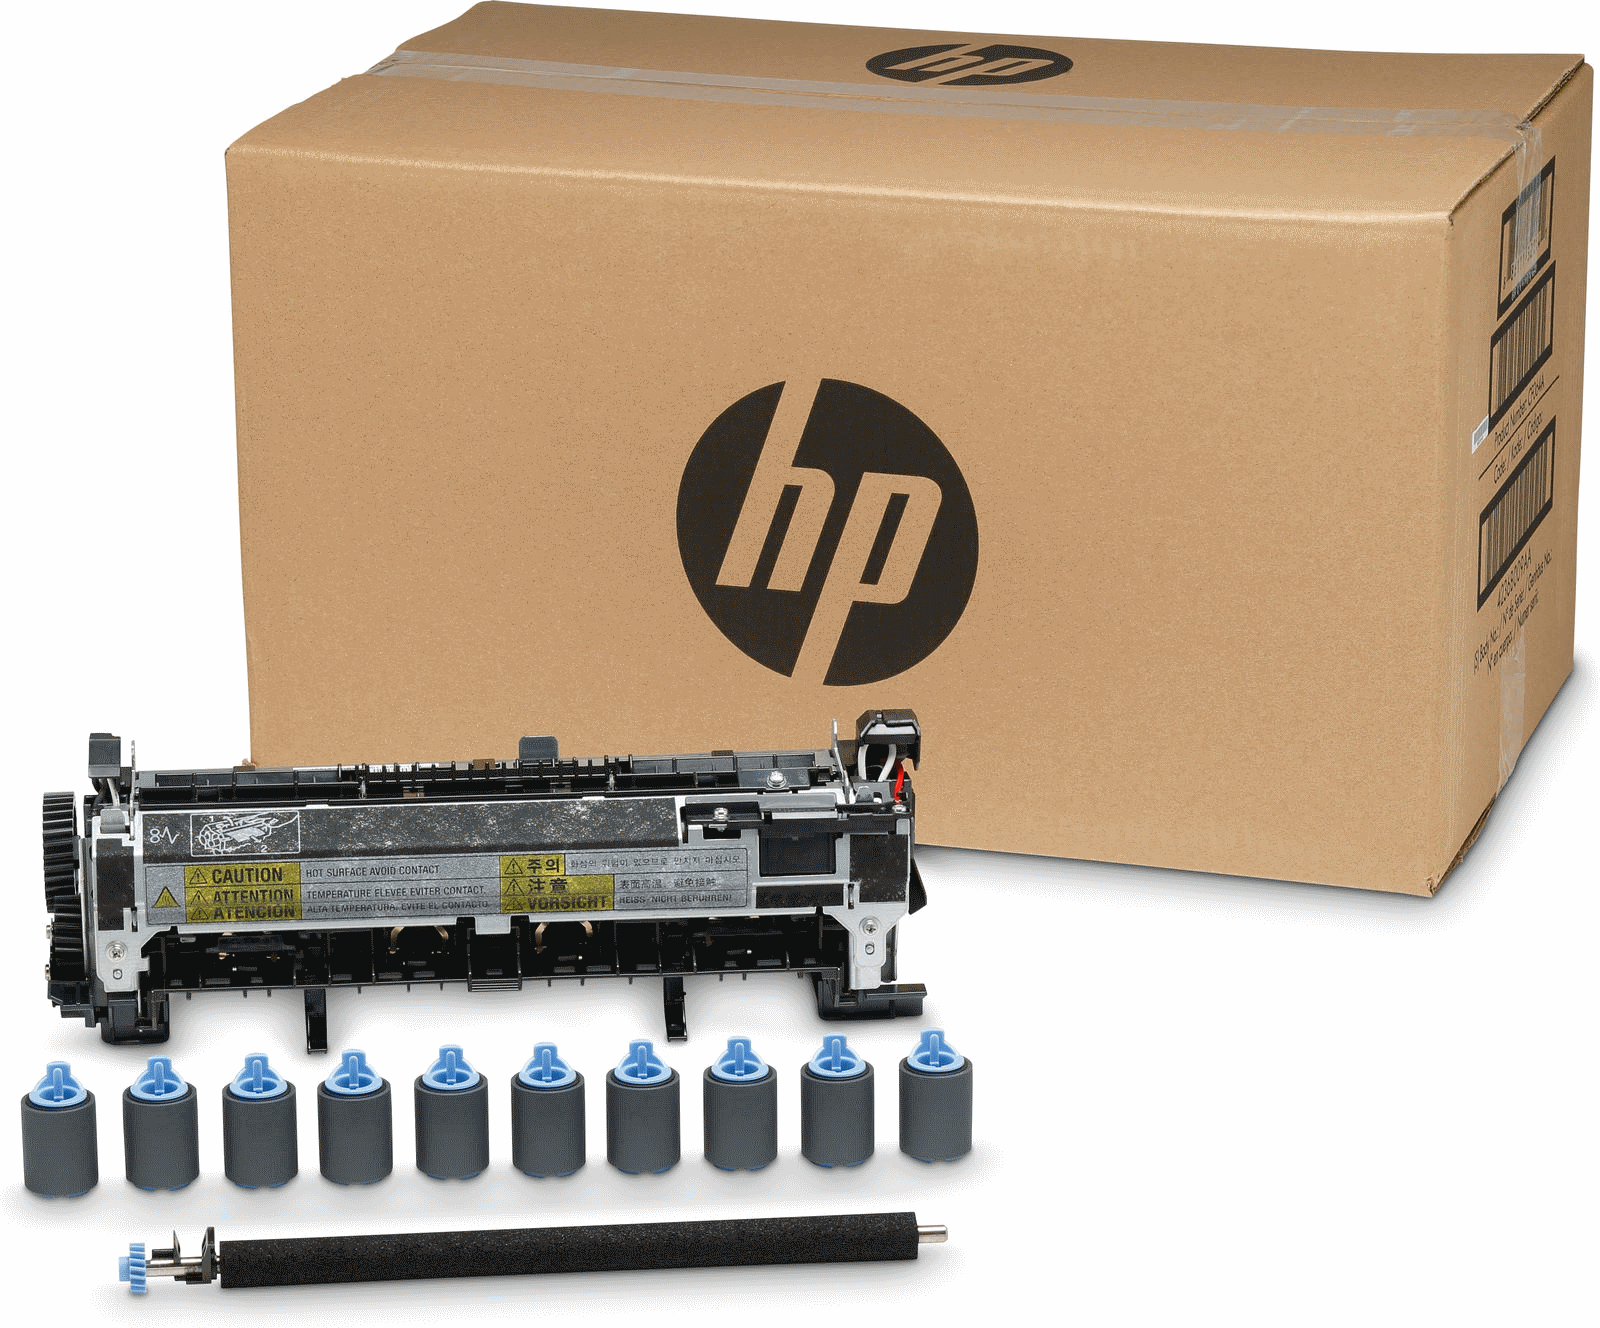 CF065-67901 HP LaserJet Enterprise 600 M601/2/3 Maintenance Kit (CF065A)